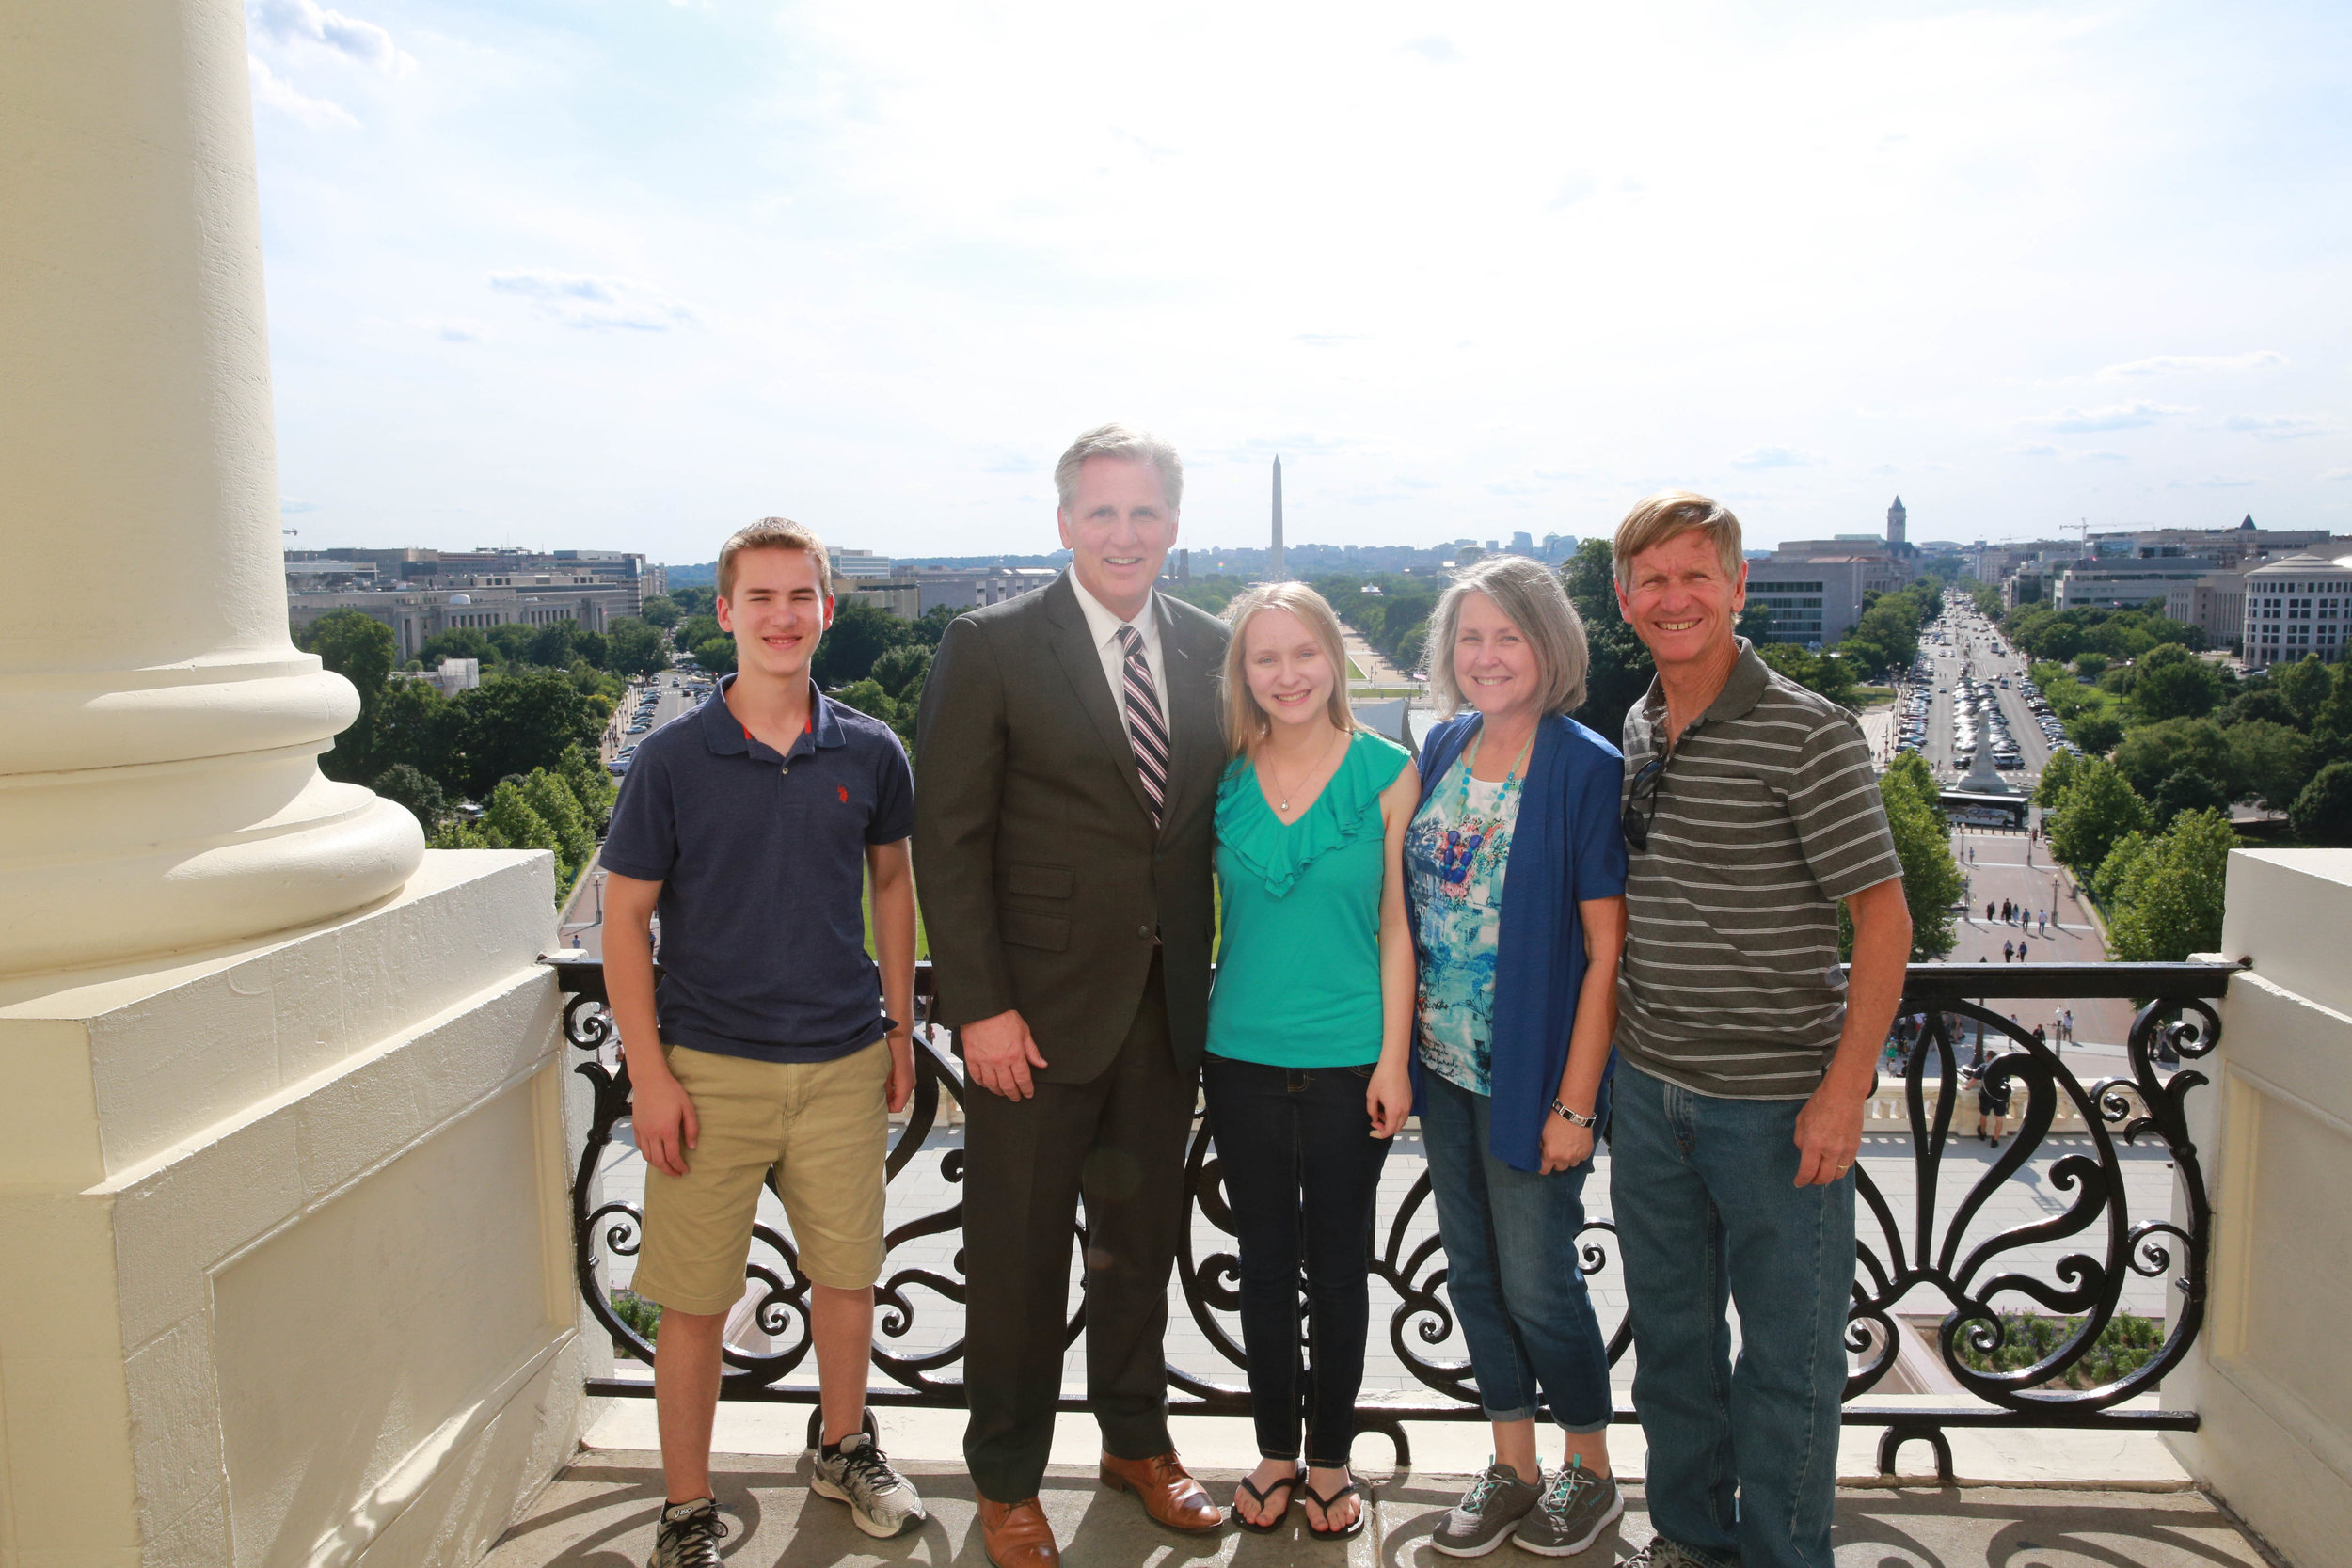 Daniel, Congressman McCarthy, Christiana, Carol, and Mike